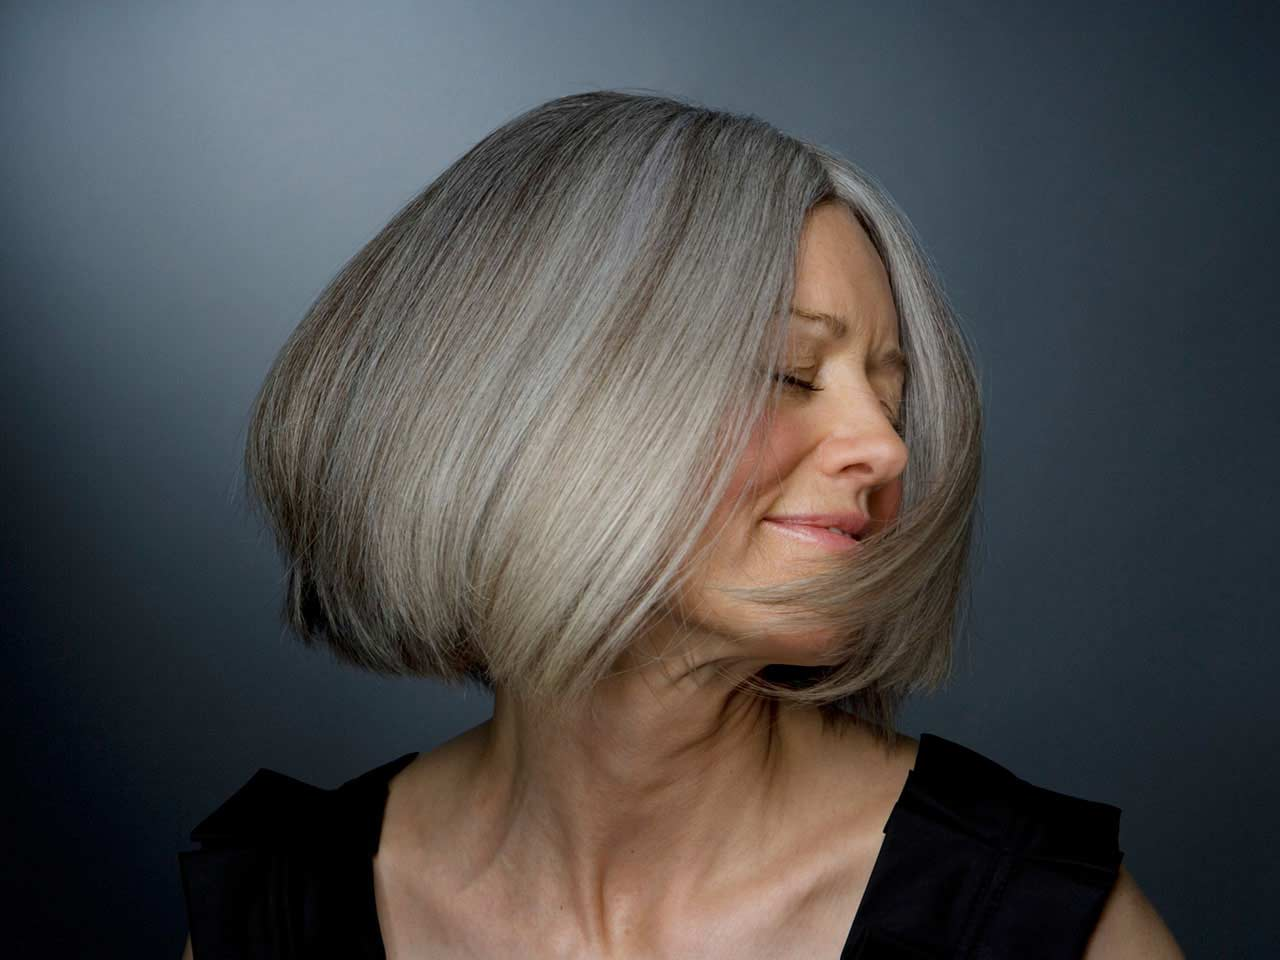 colloidal copper for gray hair